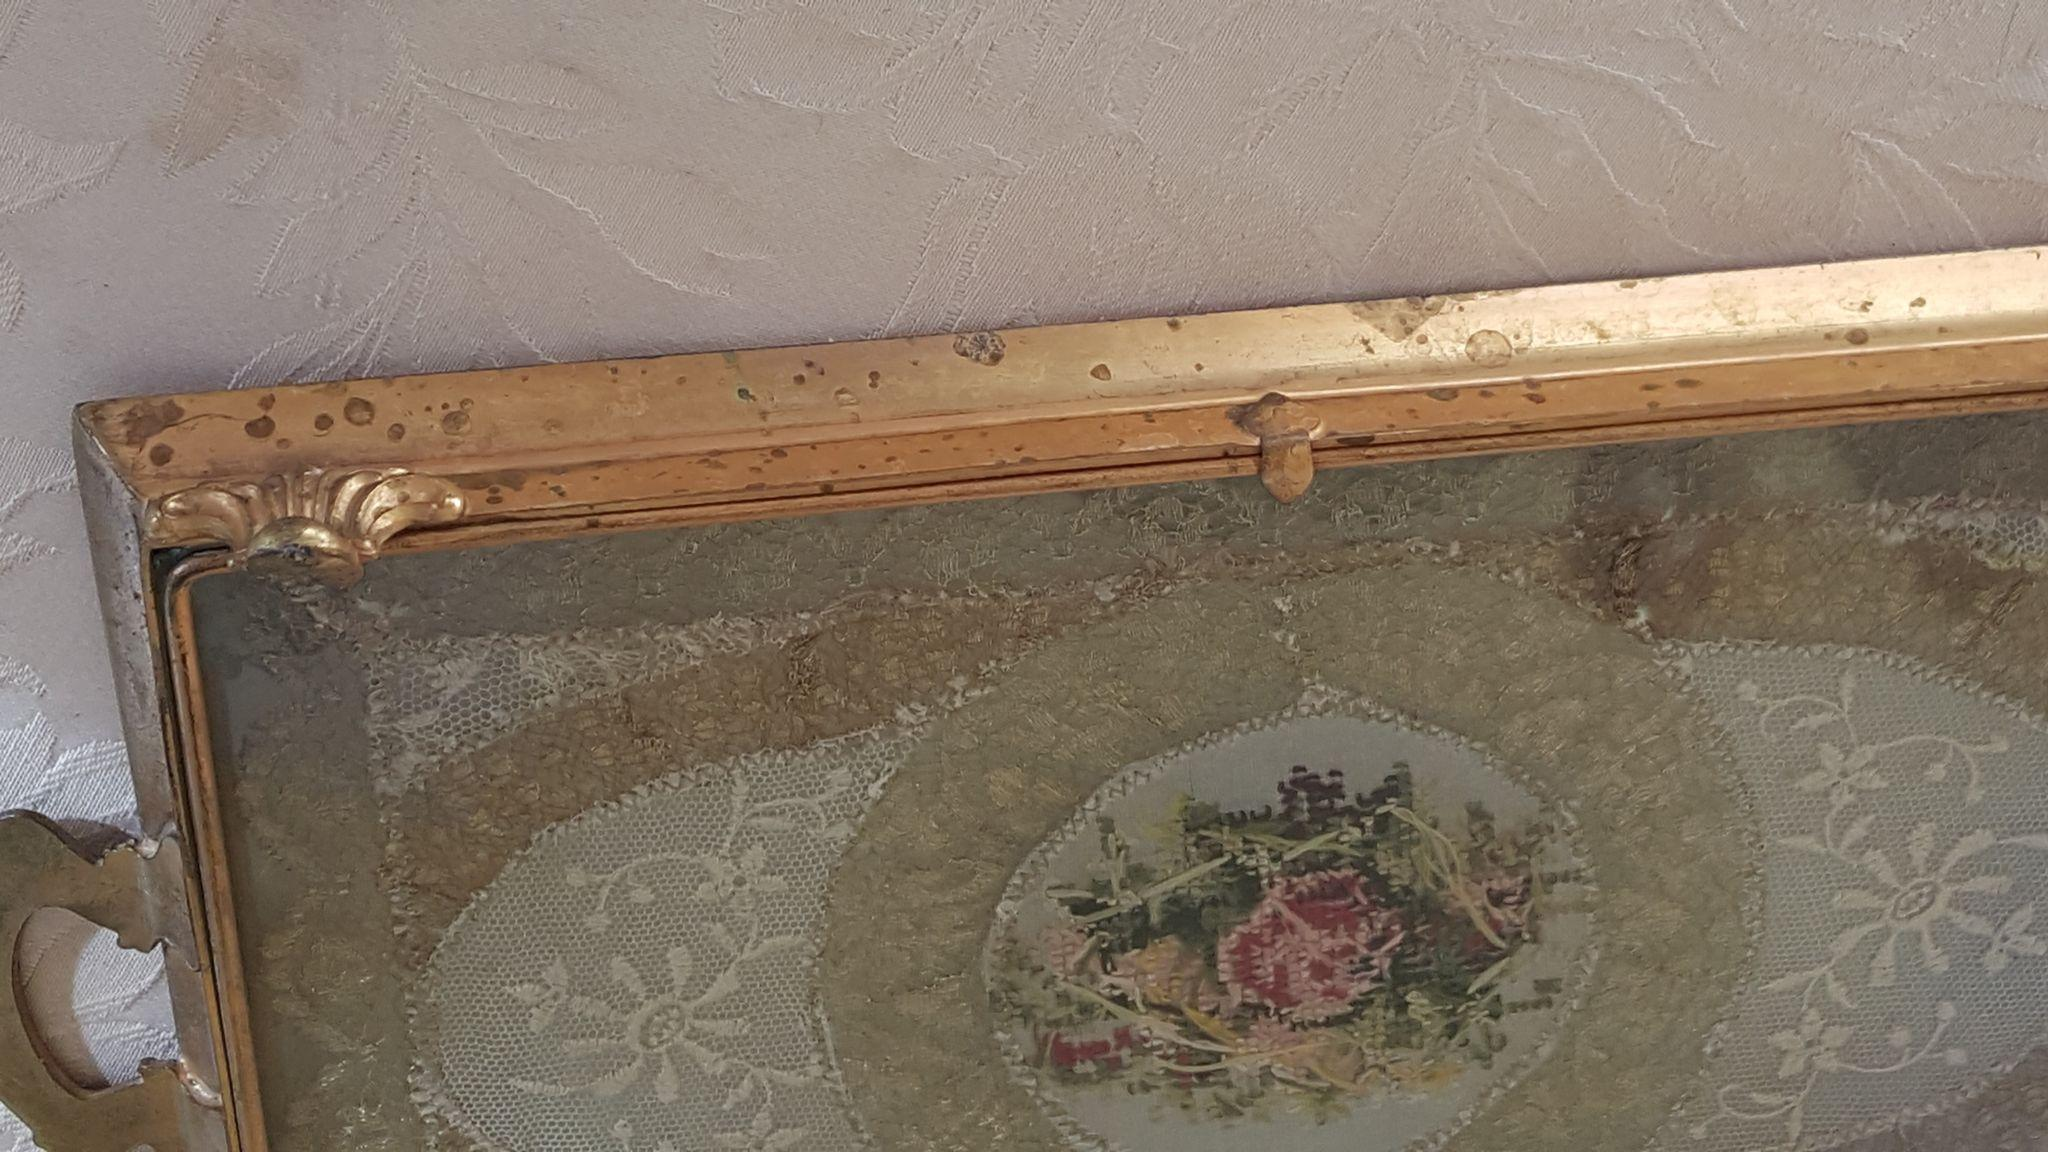 Antique vanity tray with lace insert - Roll Over Large Image To Magnify Click Large Image To Zoom